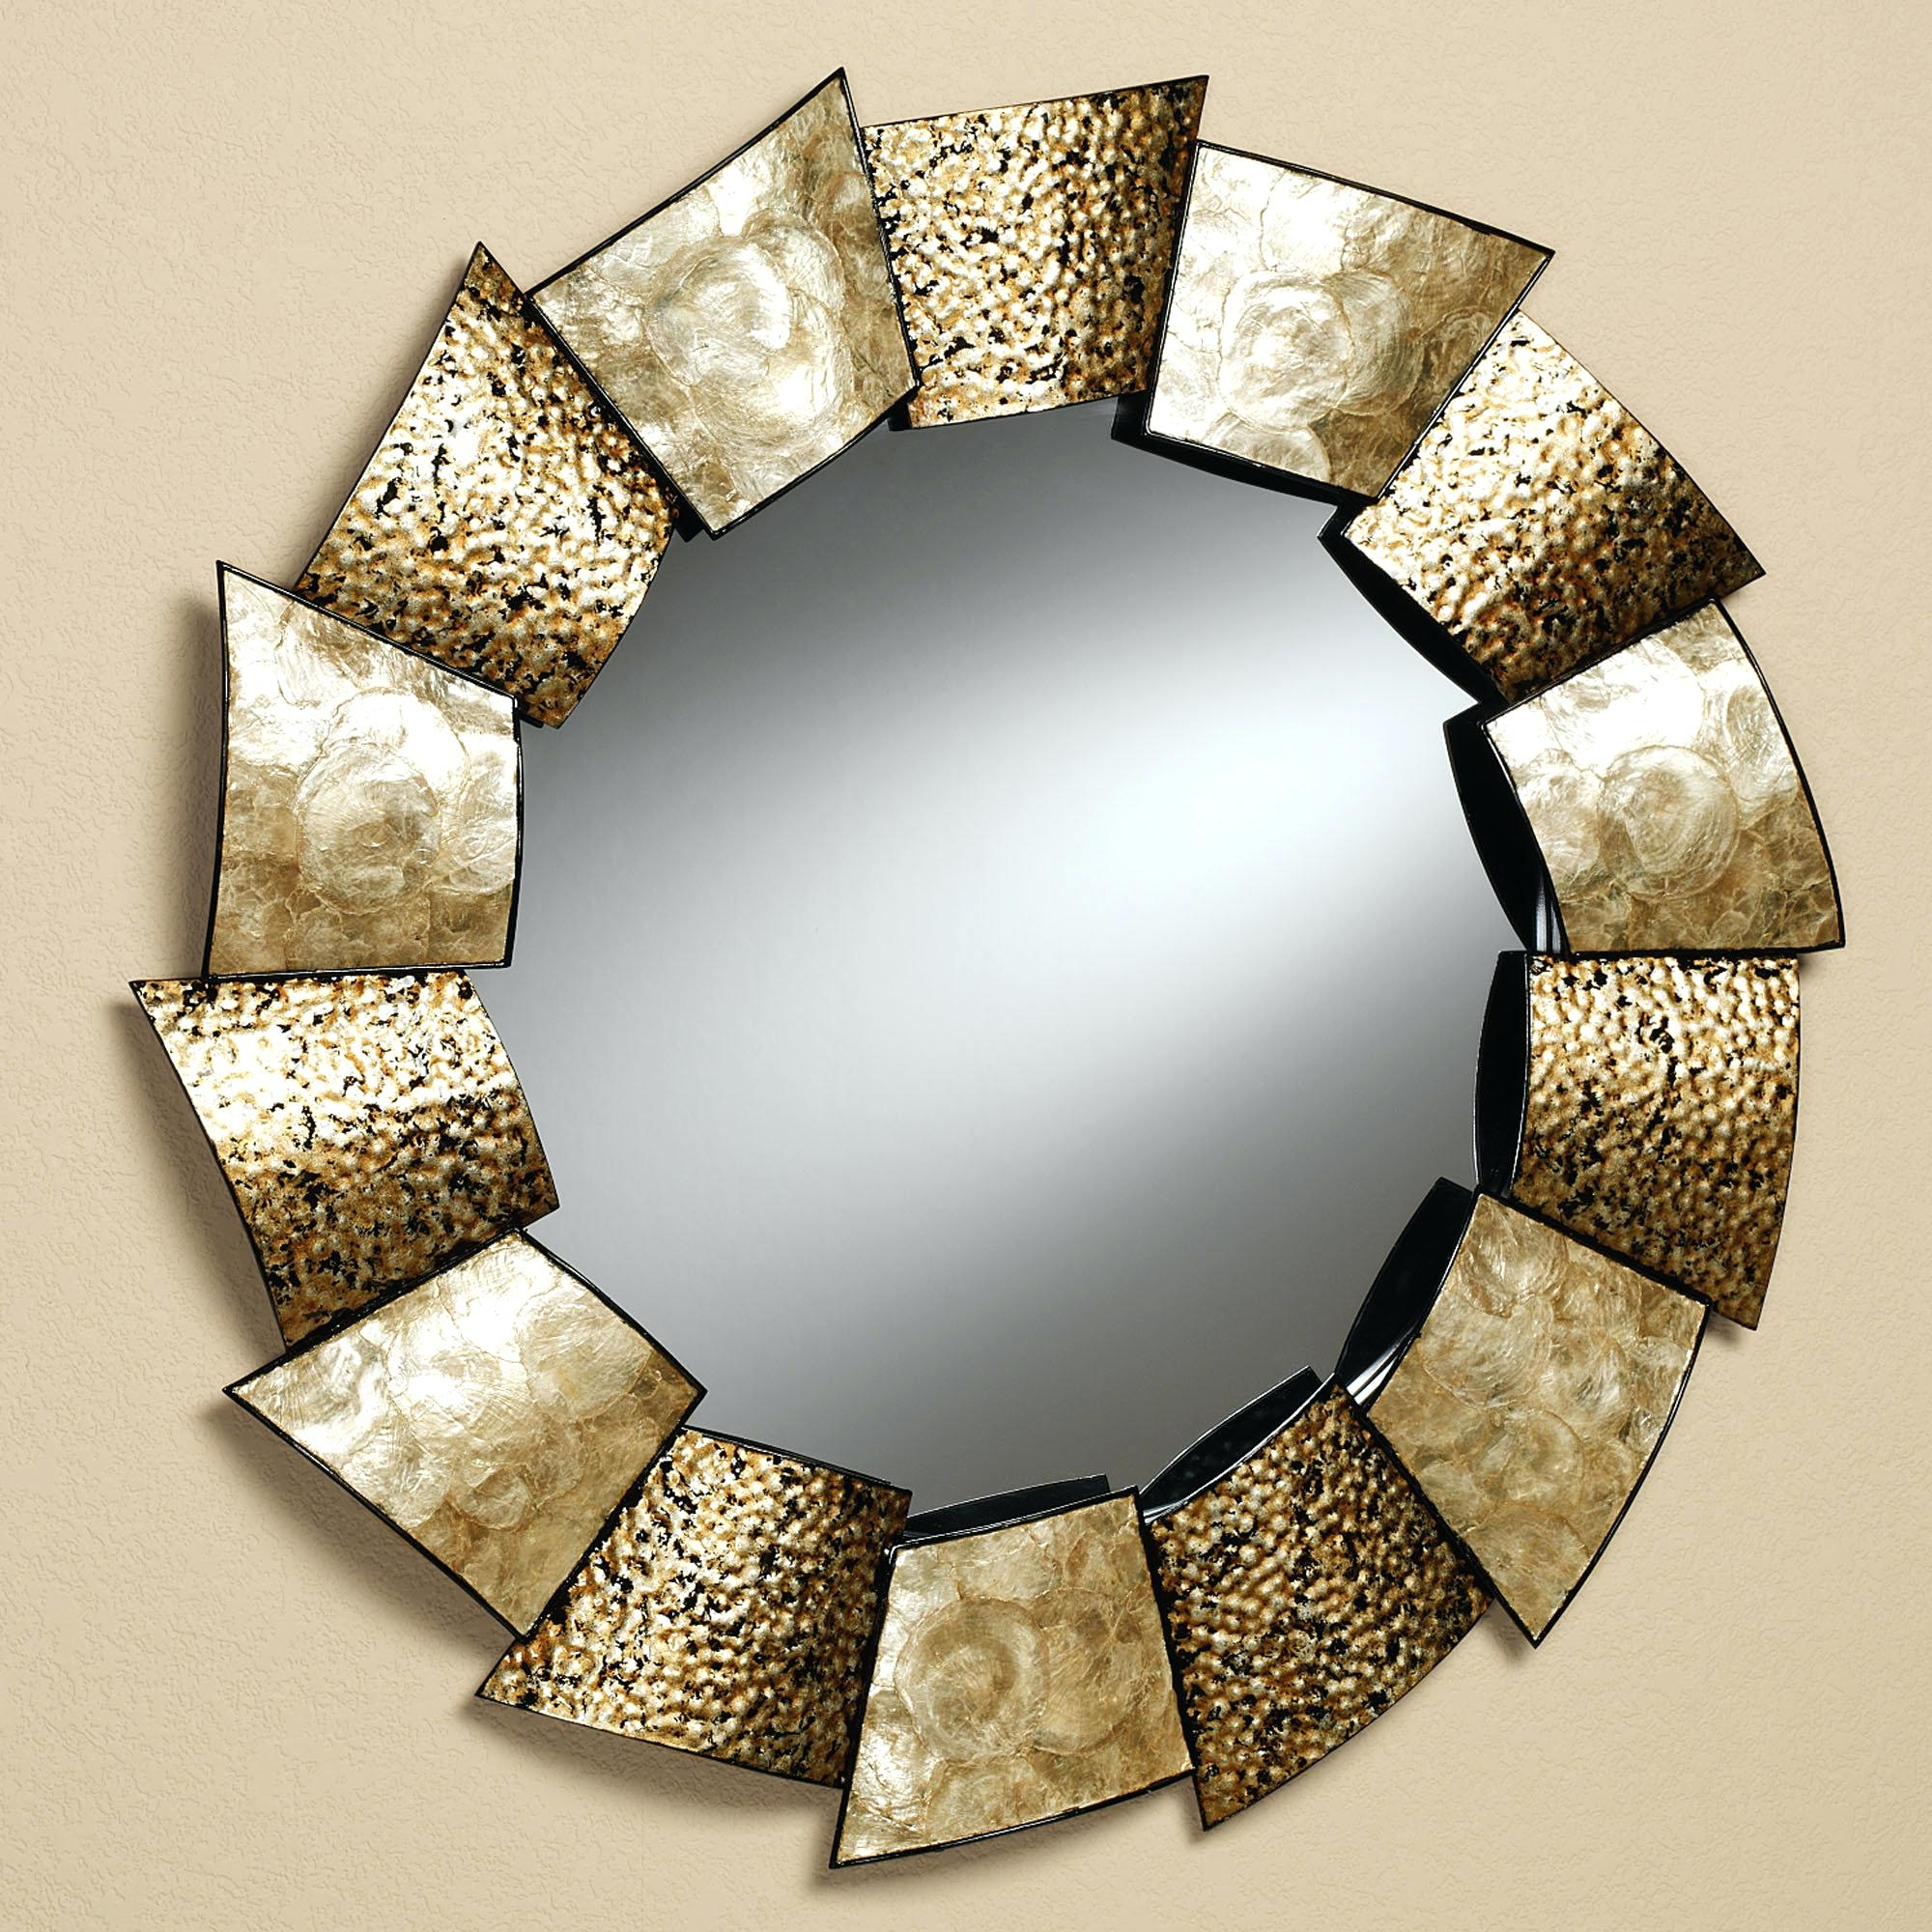 Unique Shaped Wall Mirrors Unique Shaped Wall Mirrors unique wall mirror decor shopwiz 2000 X 2000